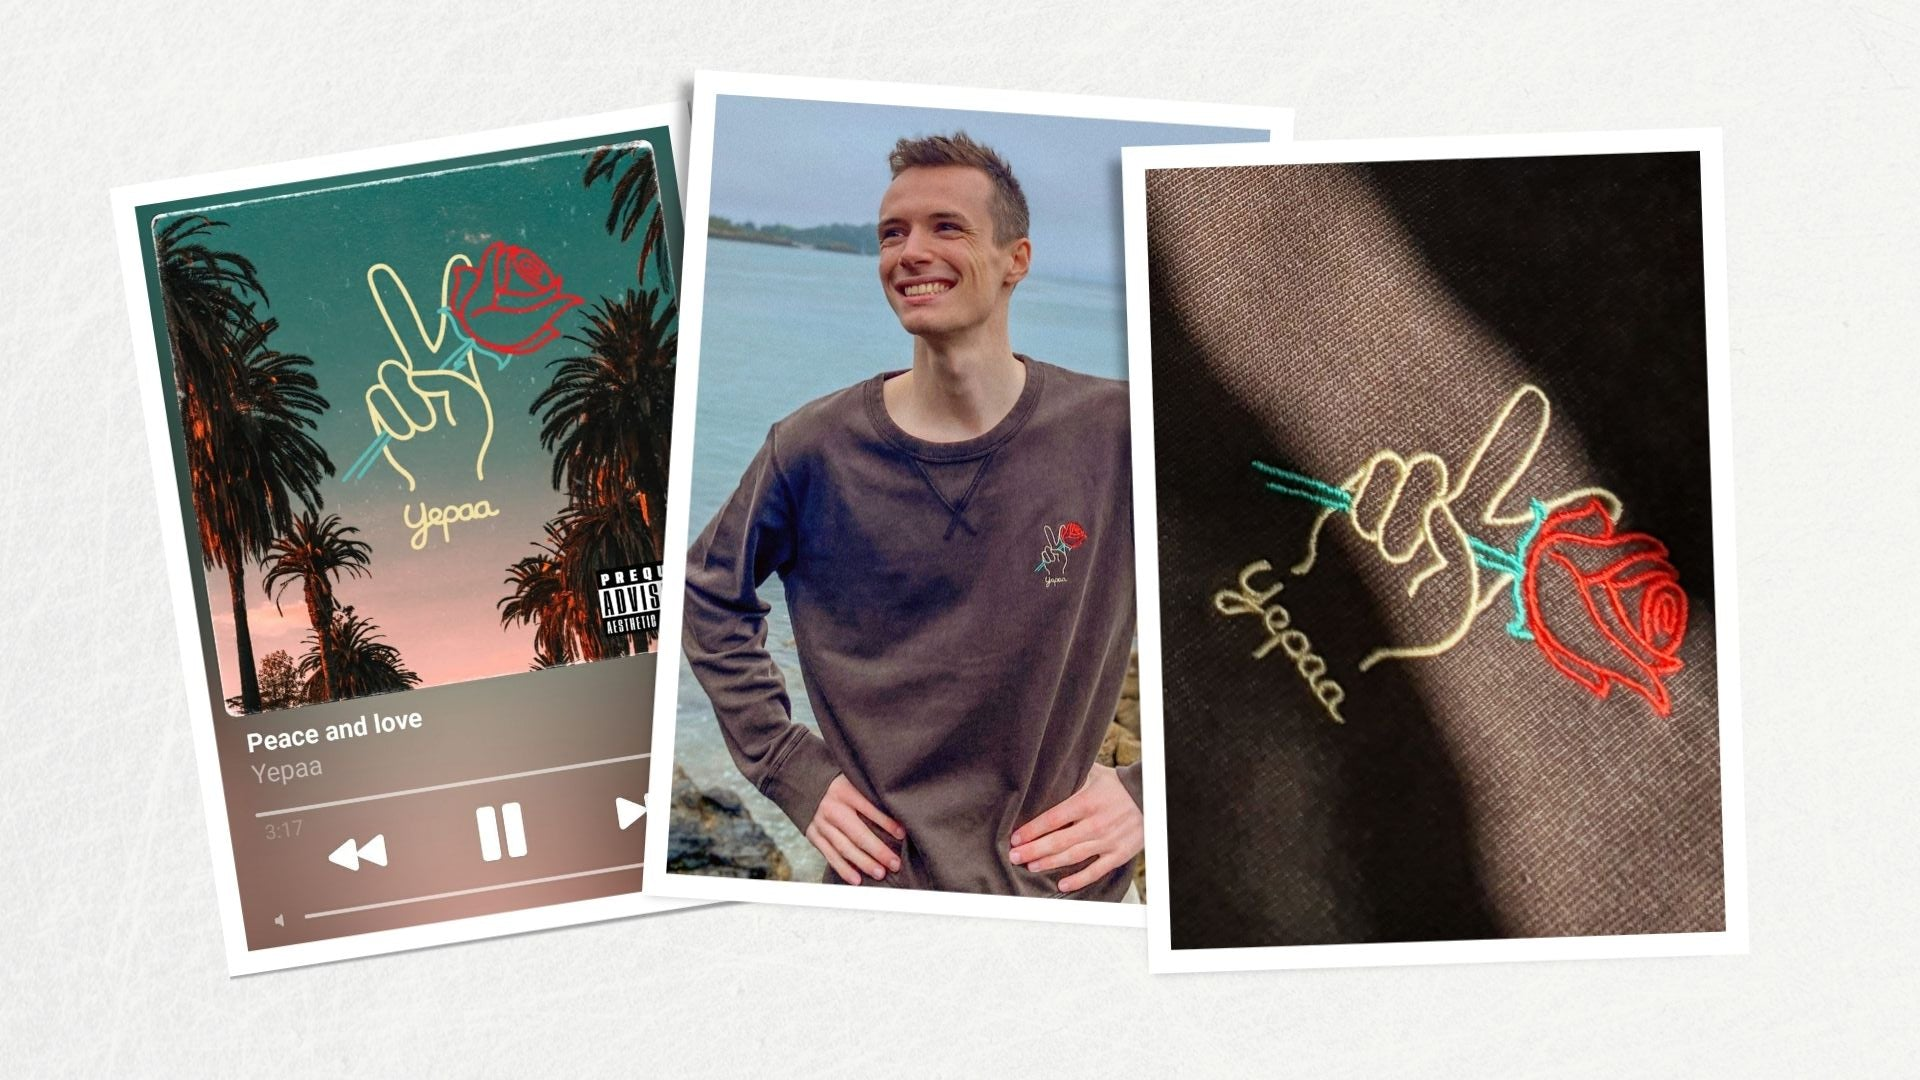 Peace and love - Collection 2021 Yepaa, la mode durable française surfwear et skate wear - Collection Summer of love